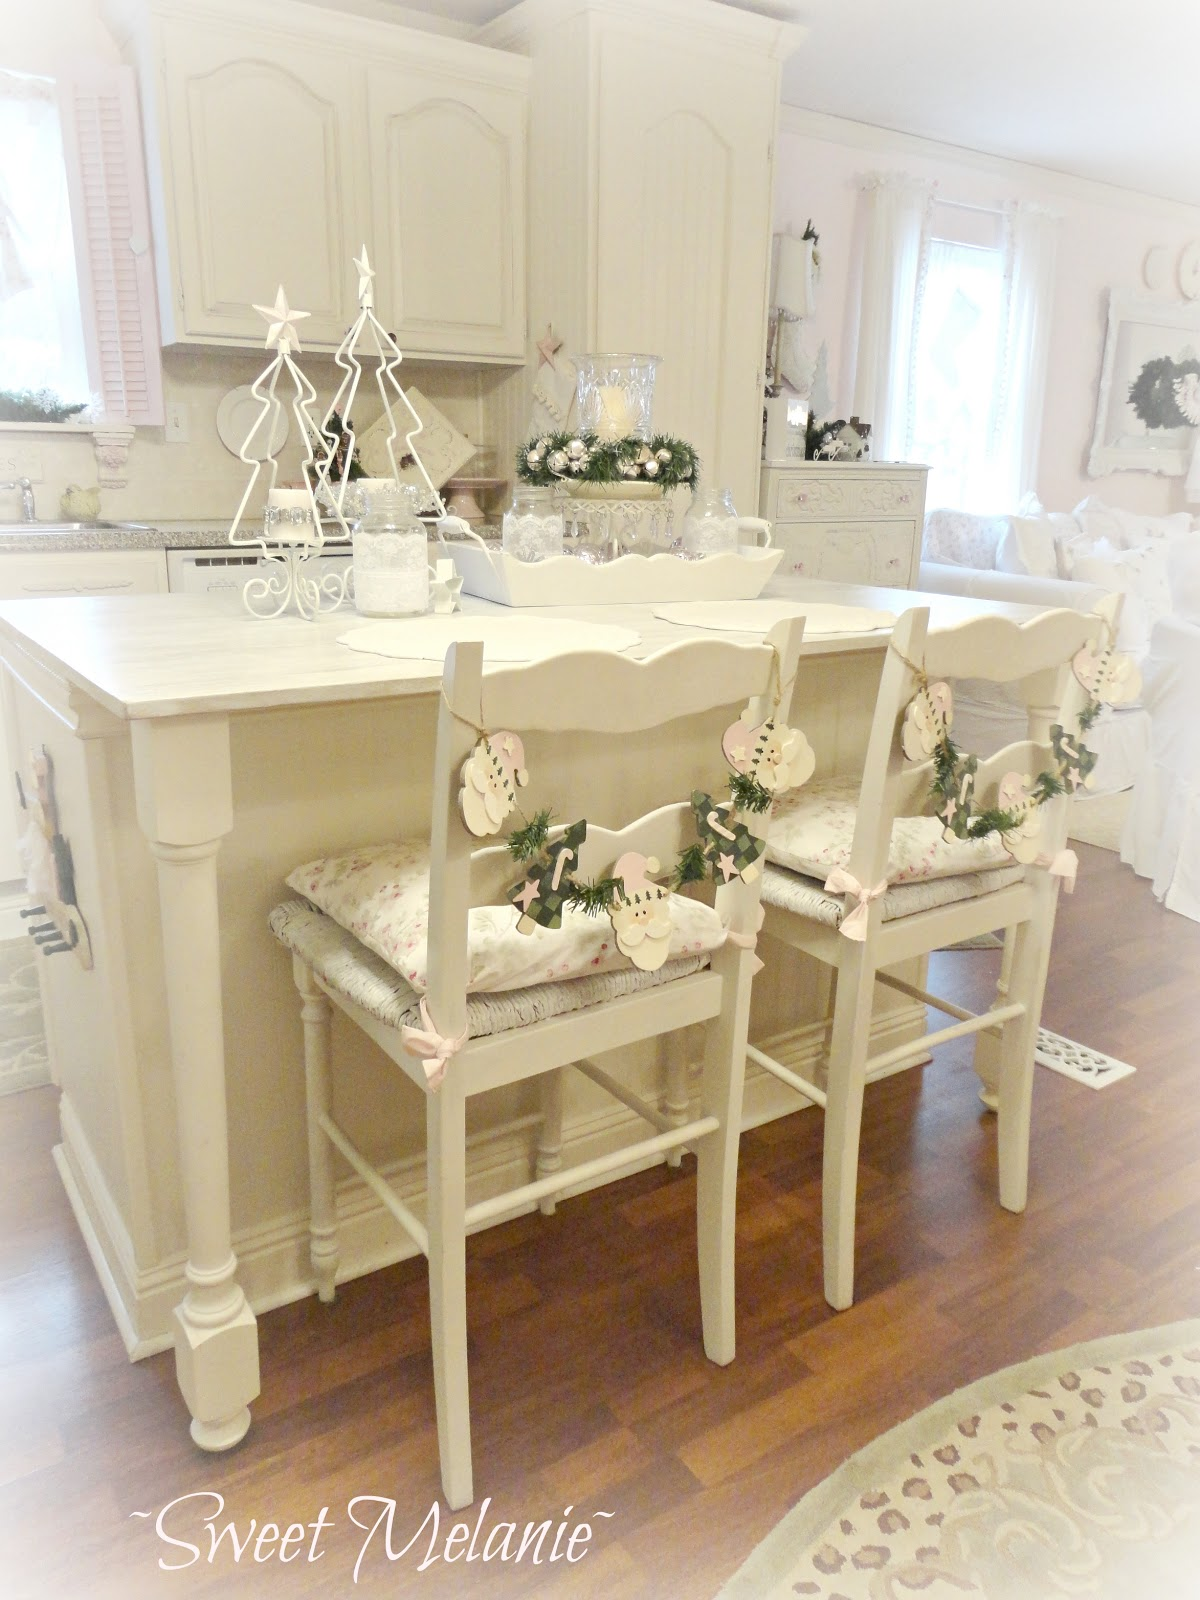 Shabby Chic Kitchen Decor Cabinets Knobs Christmas Home Tour Debbiedoo 39s